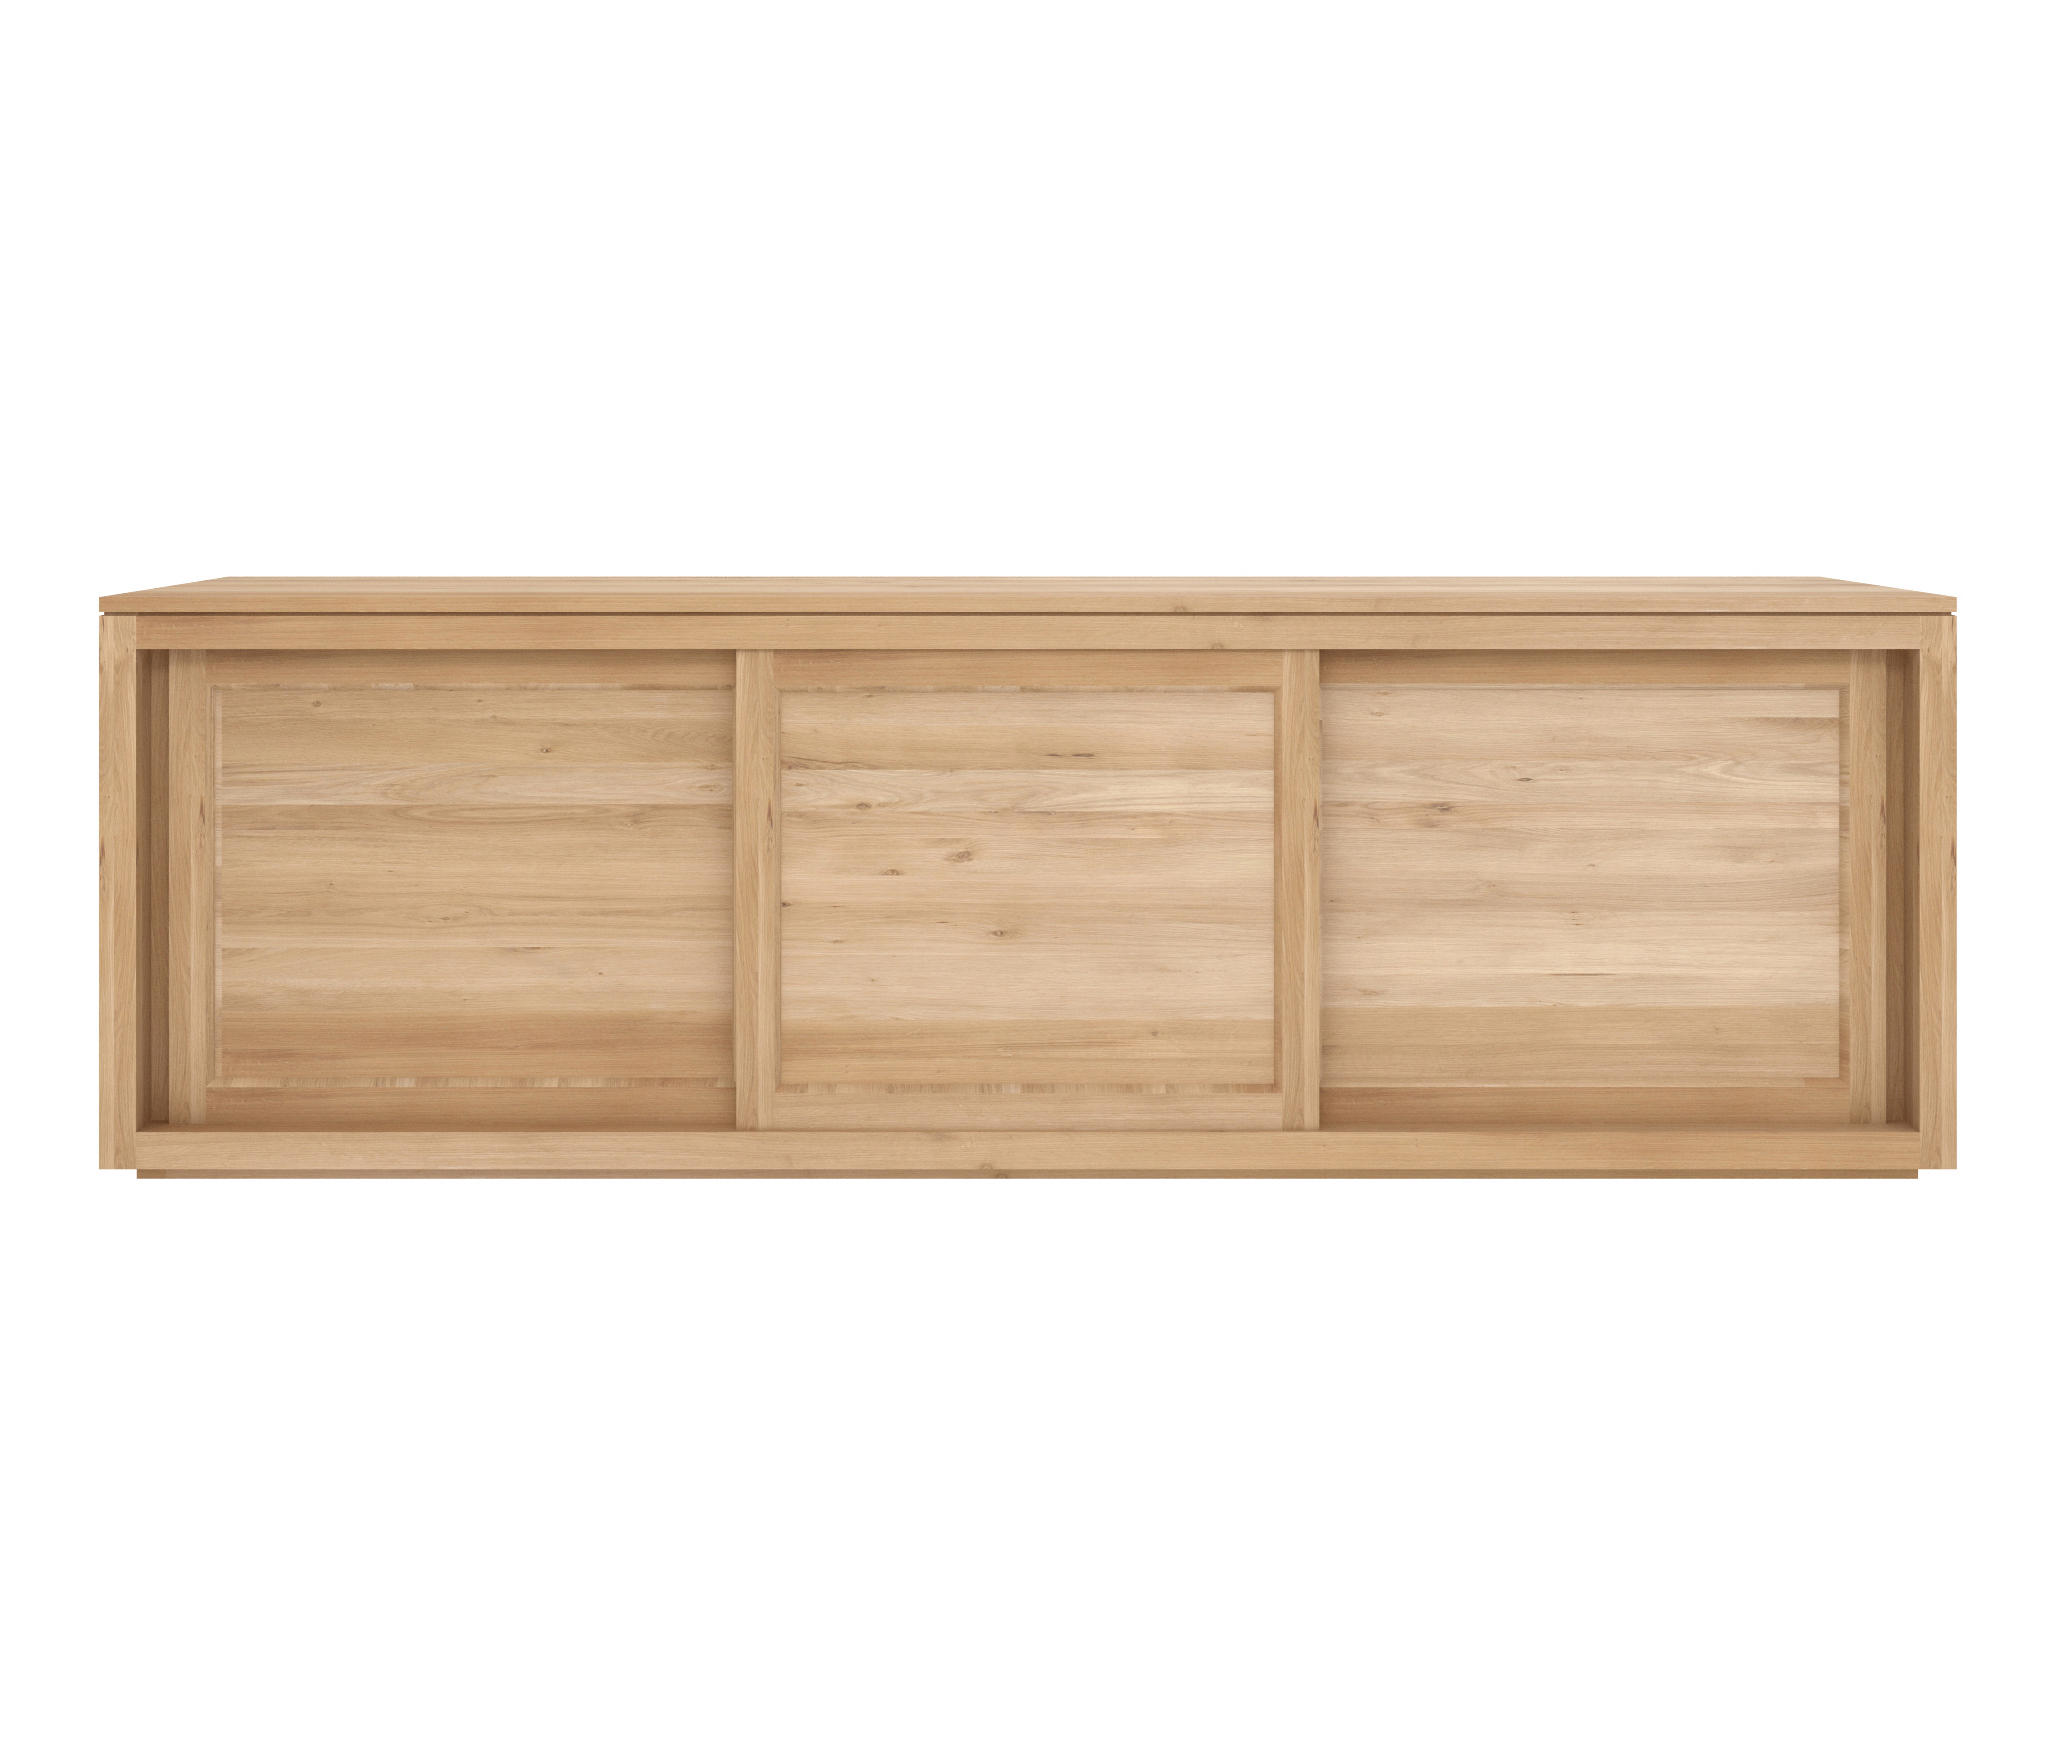 Ethnicraft Oak Pure Sideboard 150 Cm 2 Sliding Doors